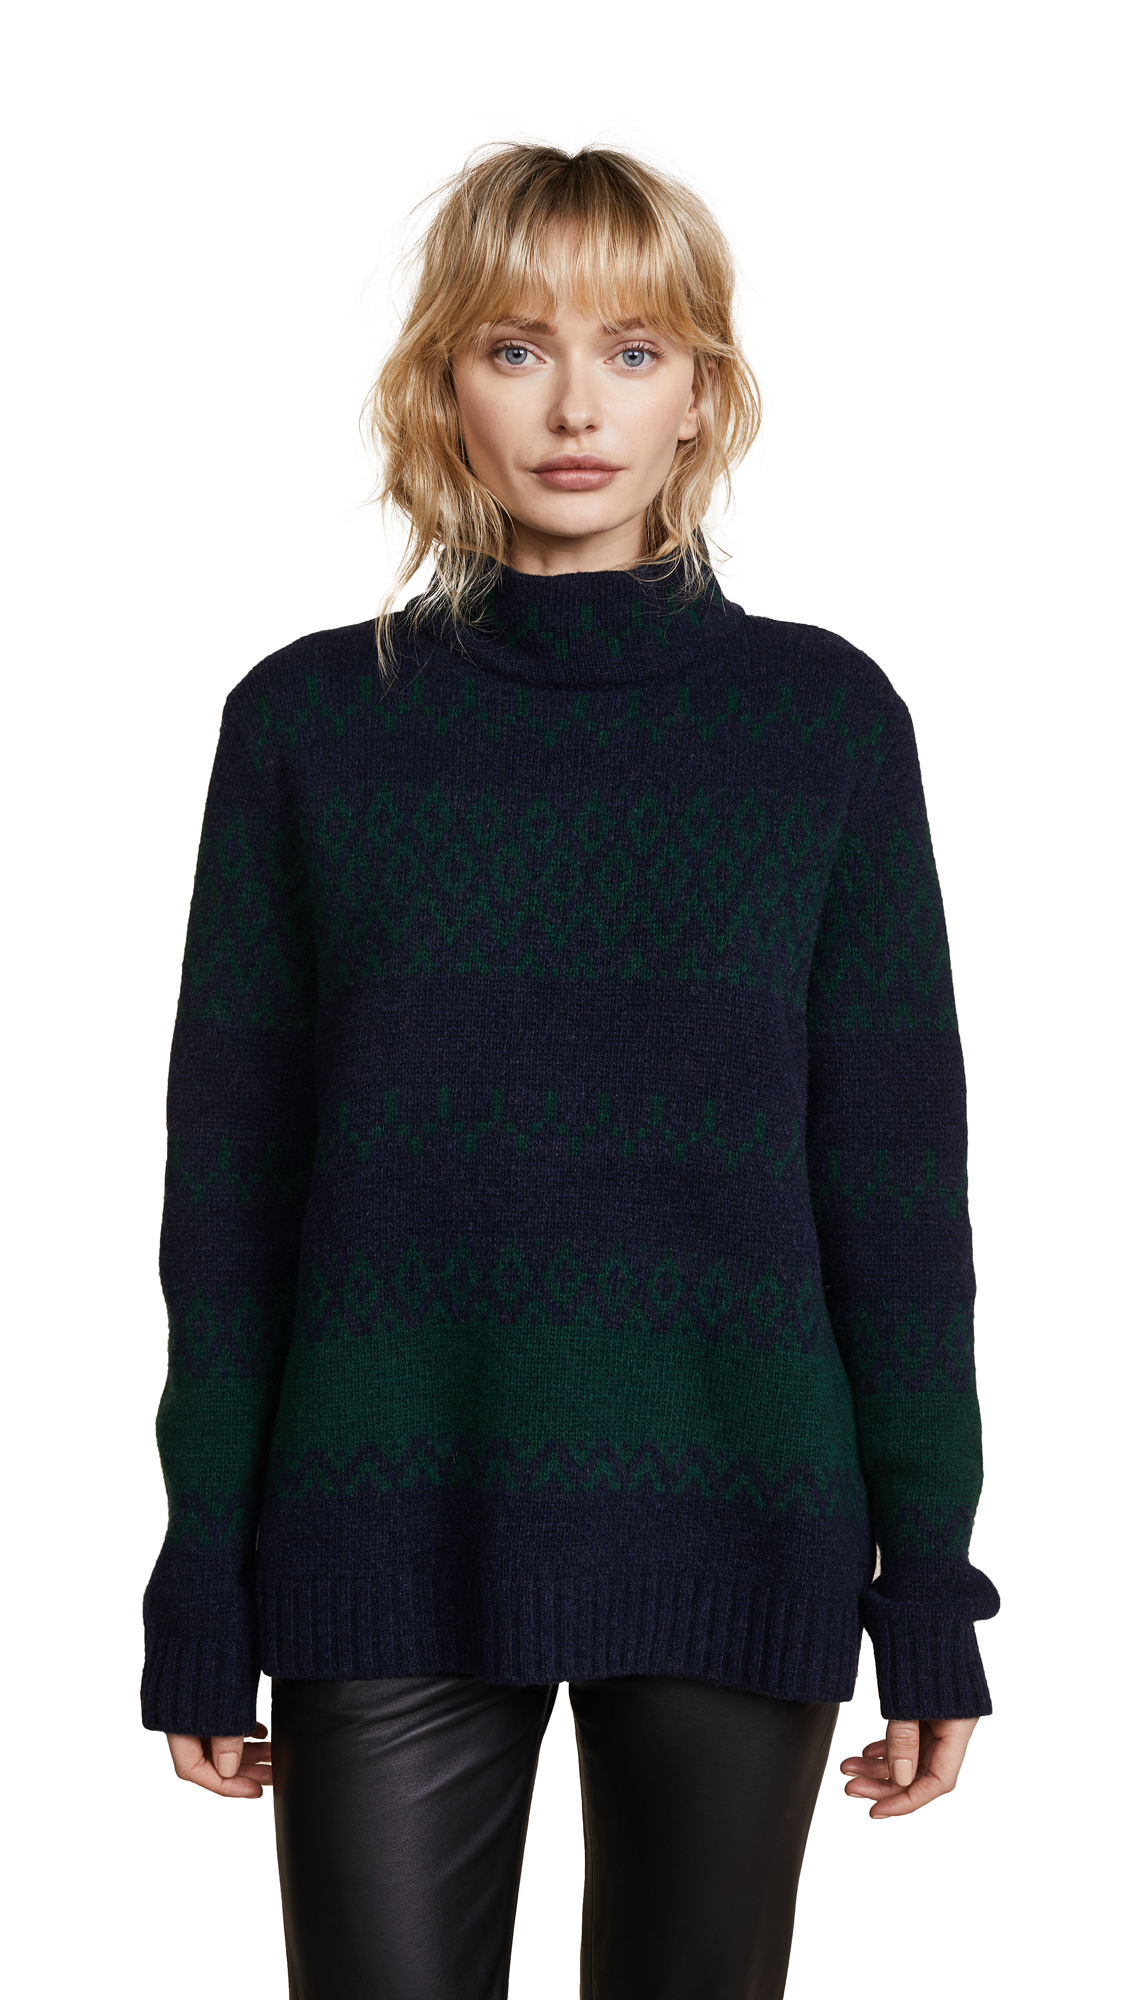 A.P.C. Saskia Intarsia Sweater In Dark Navy